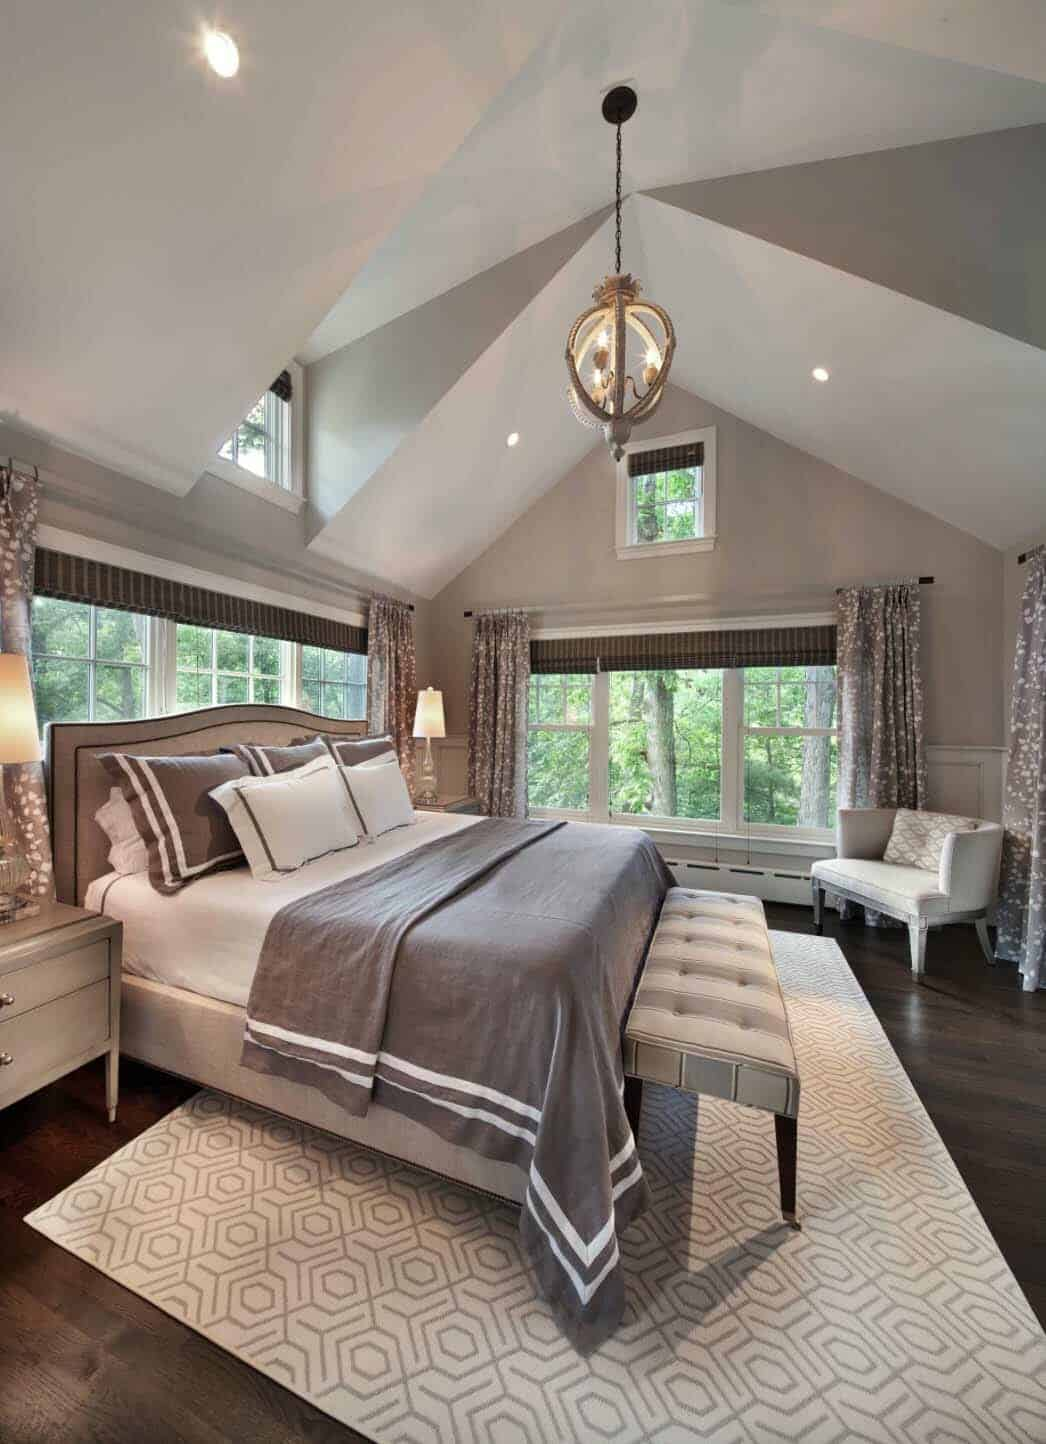 25 absolutely stunning master bedroom color scheme ideas on master bedroom wall color id=32924